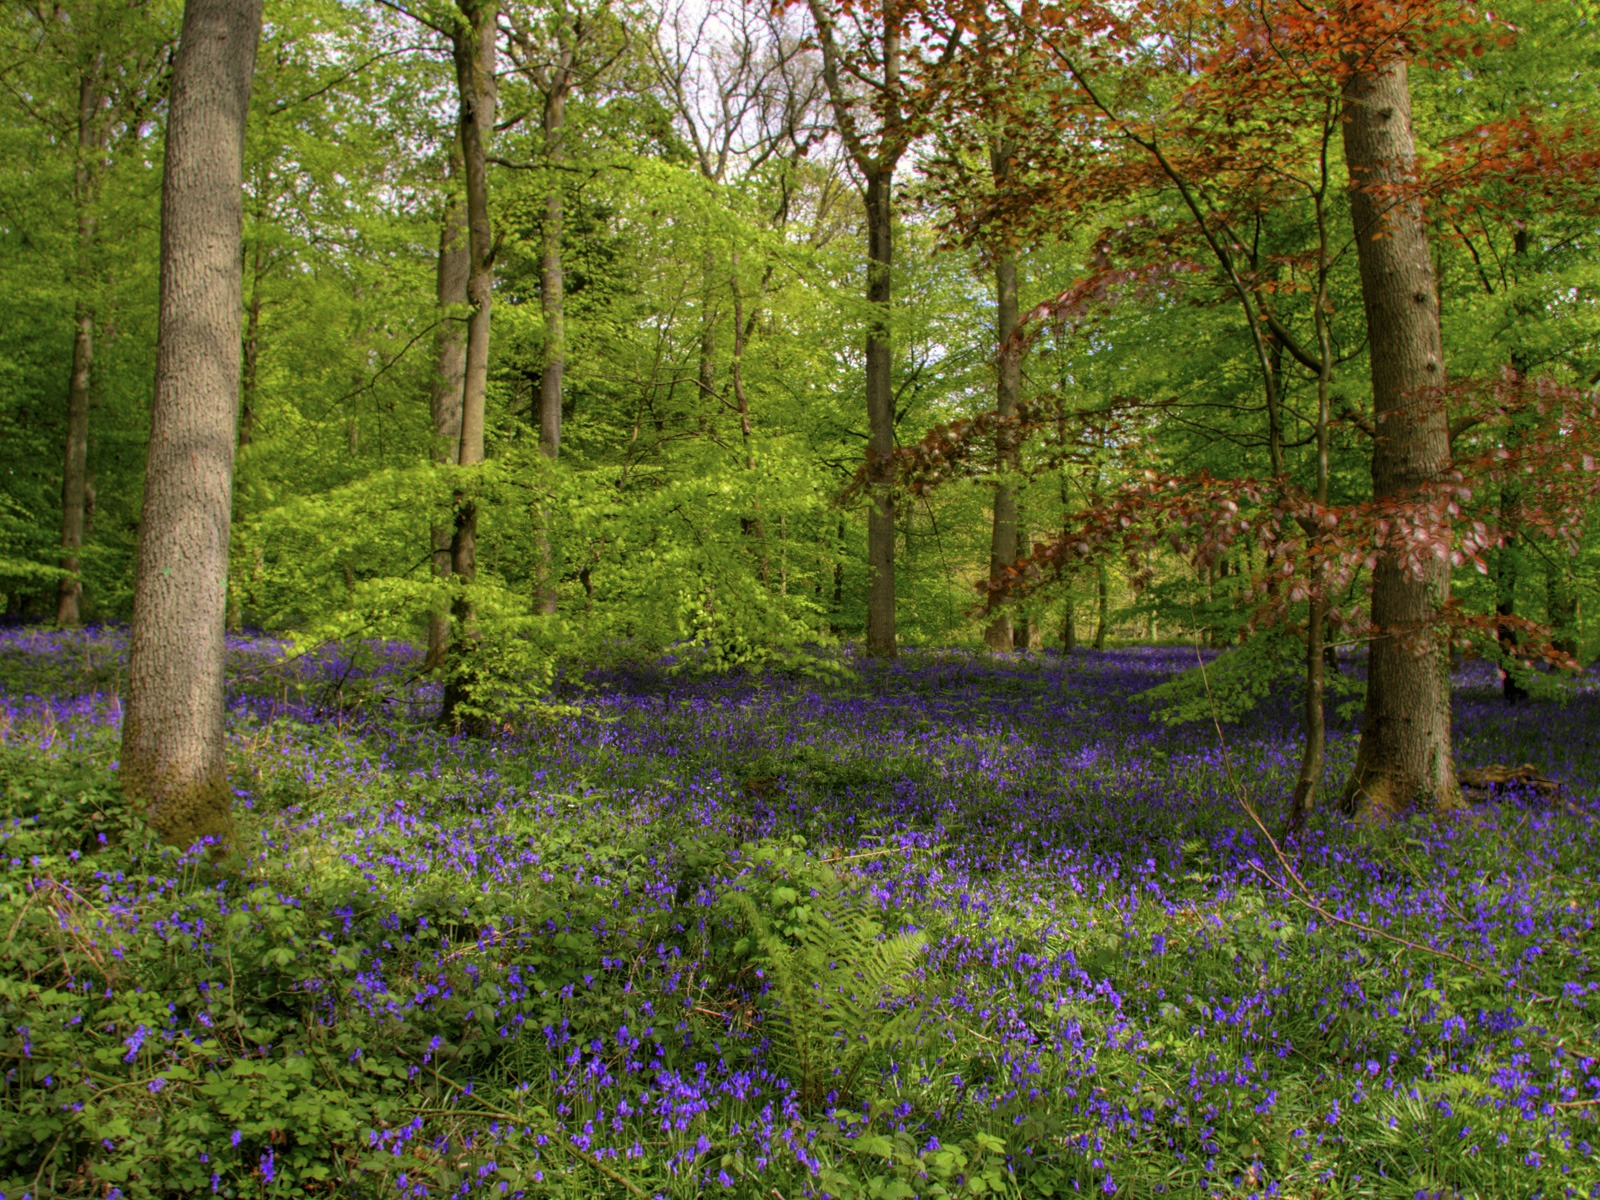 Bluebell Wood Wallpaper High Dynamic Range Nature Wallpapers in